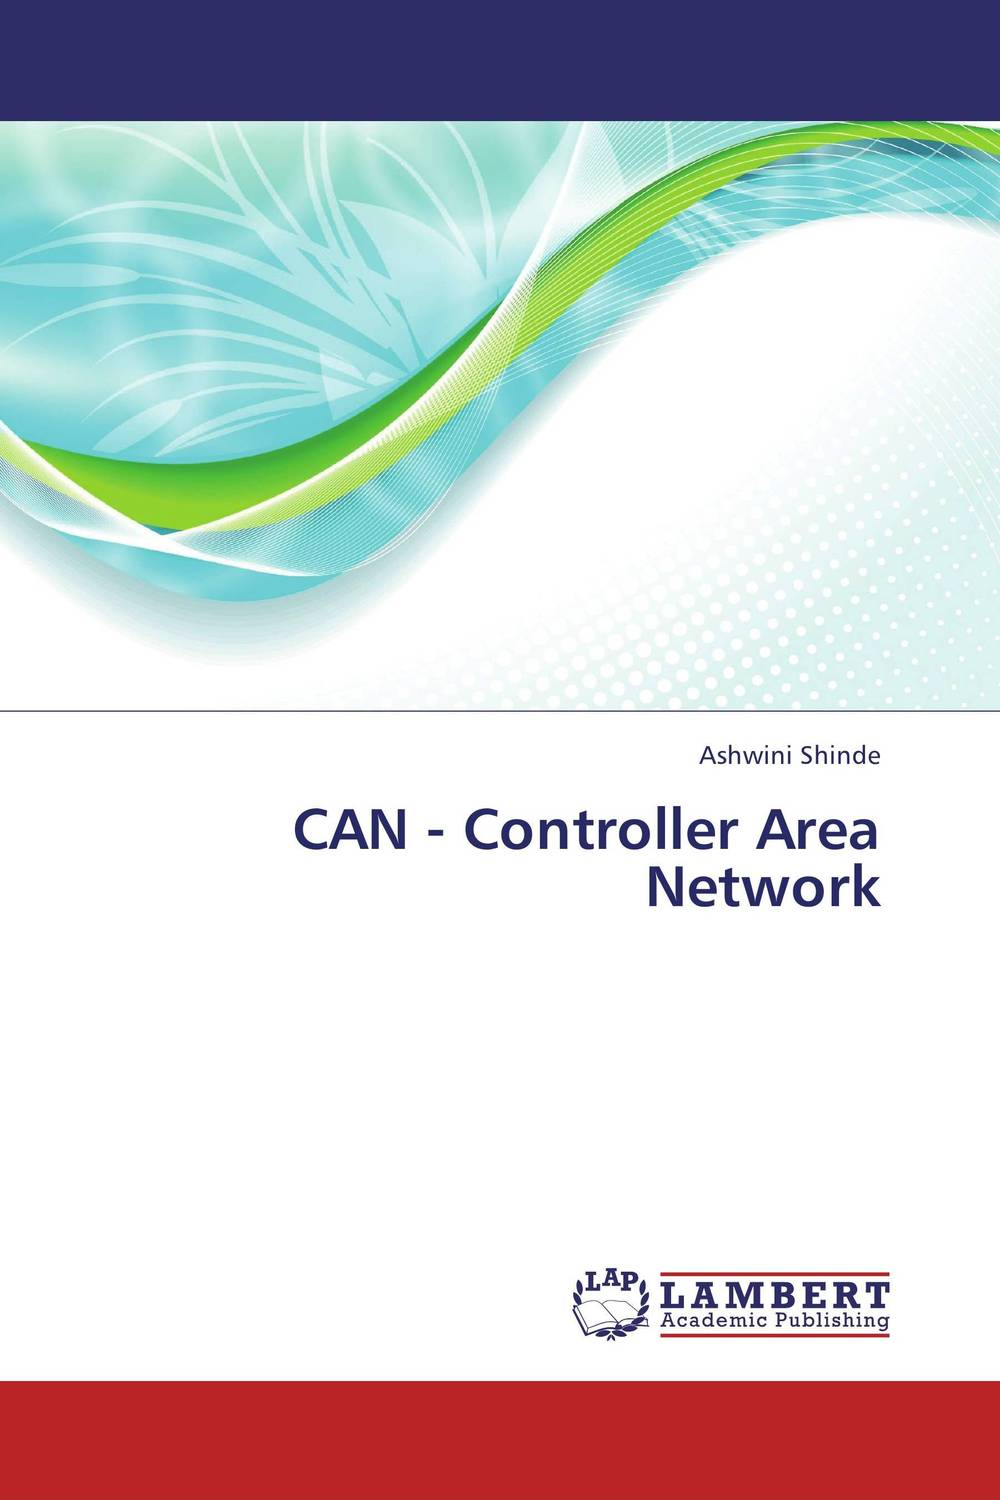 CAN - Controller Area Network  vs2024bn new pwm controller network access computer control can connect with mt50 for communication